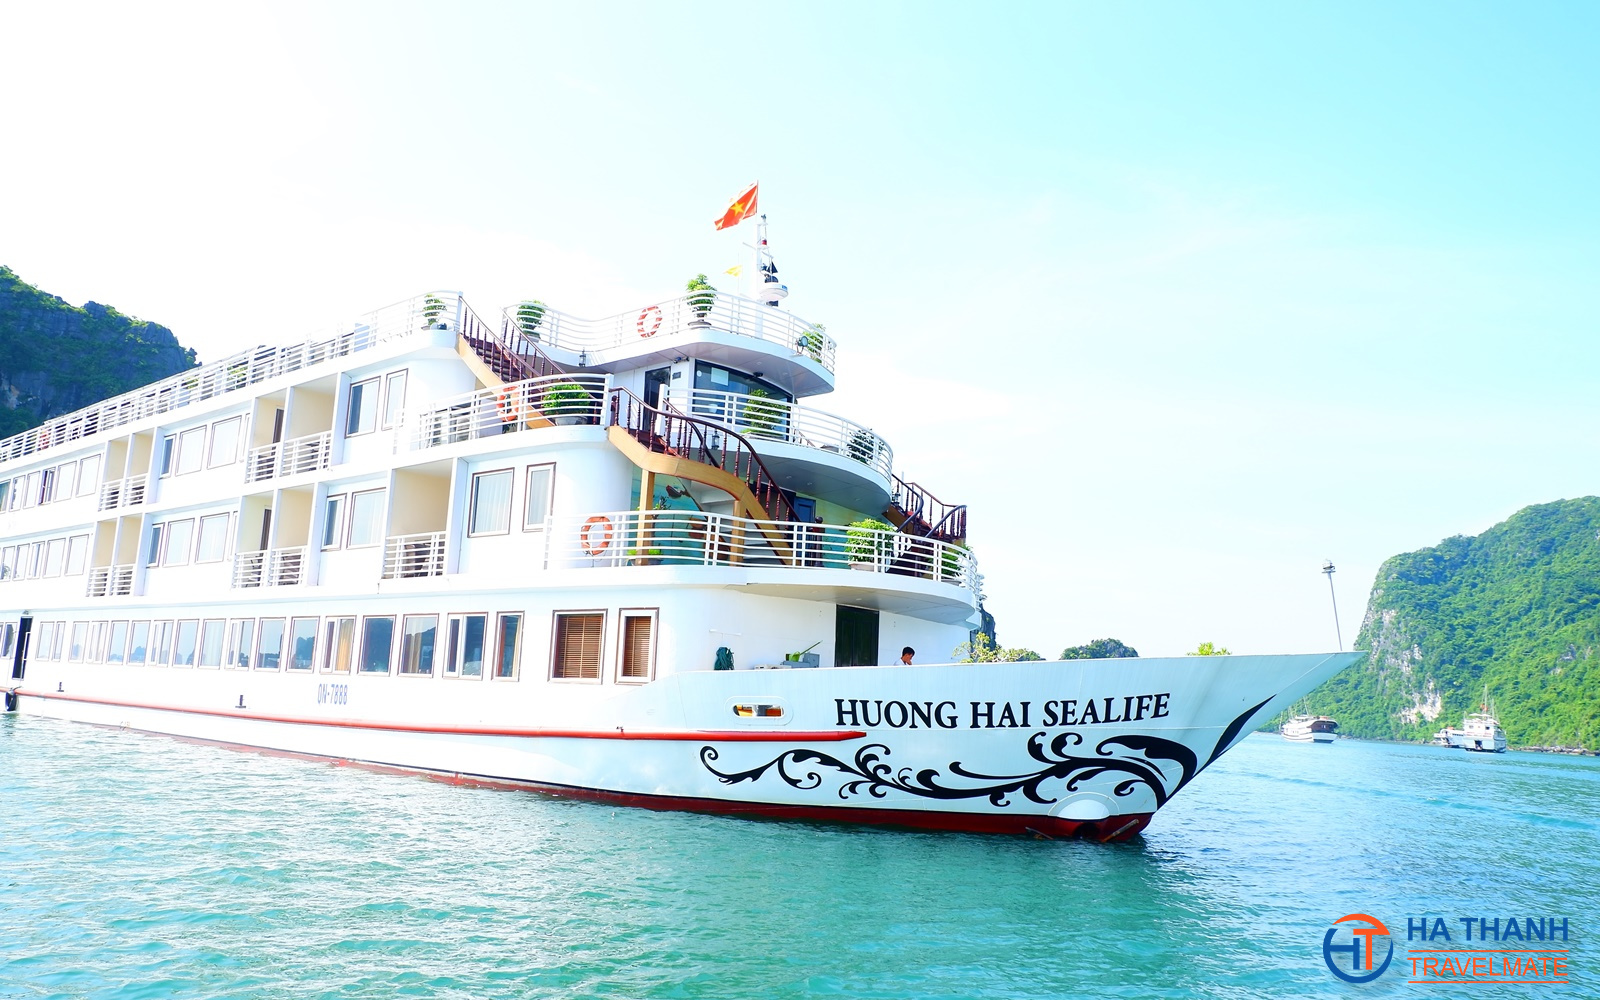 Huong Hai Sealife Cruise 3 days/2 nights